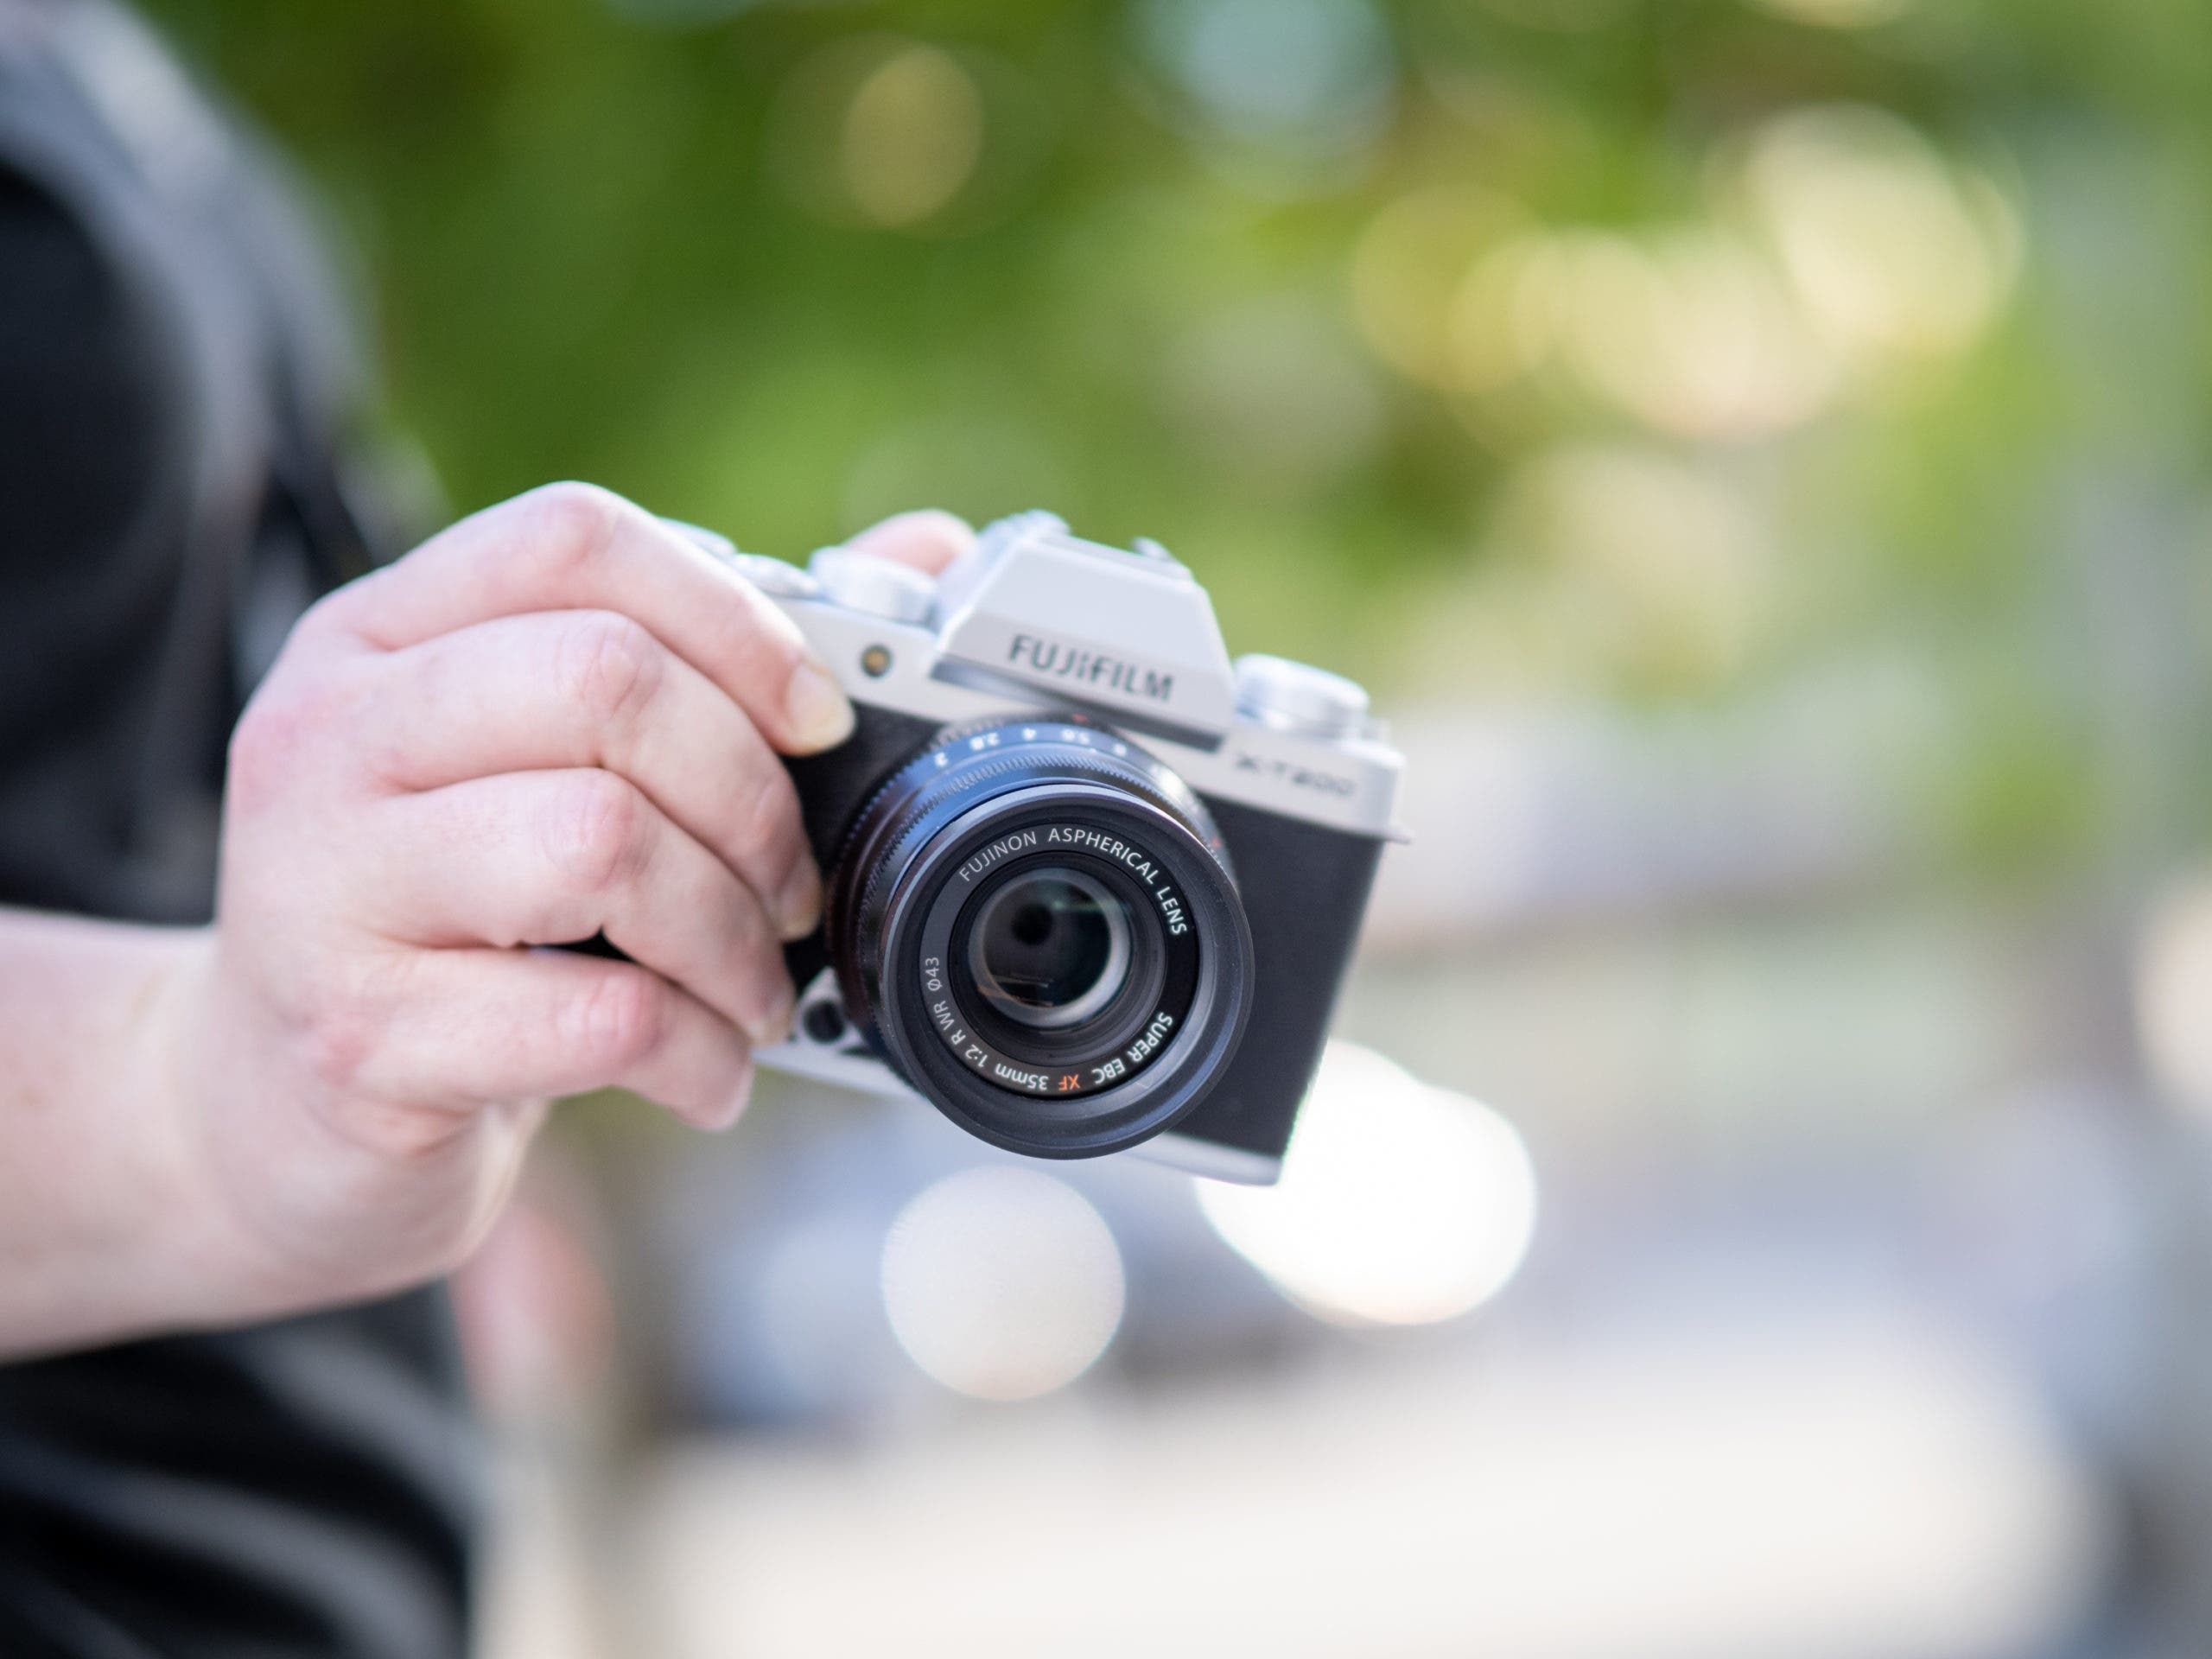 Fujifilm XS10: IBIS Will Be Great, But Weather Sealing Is A Must-Have